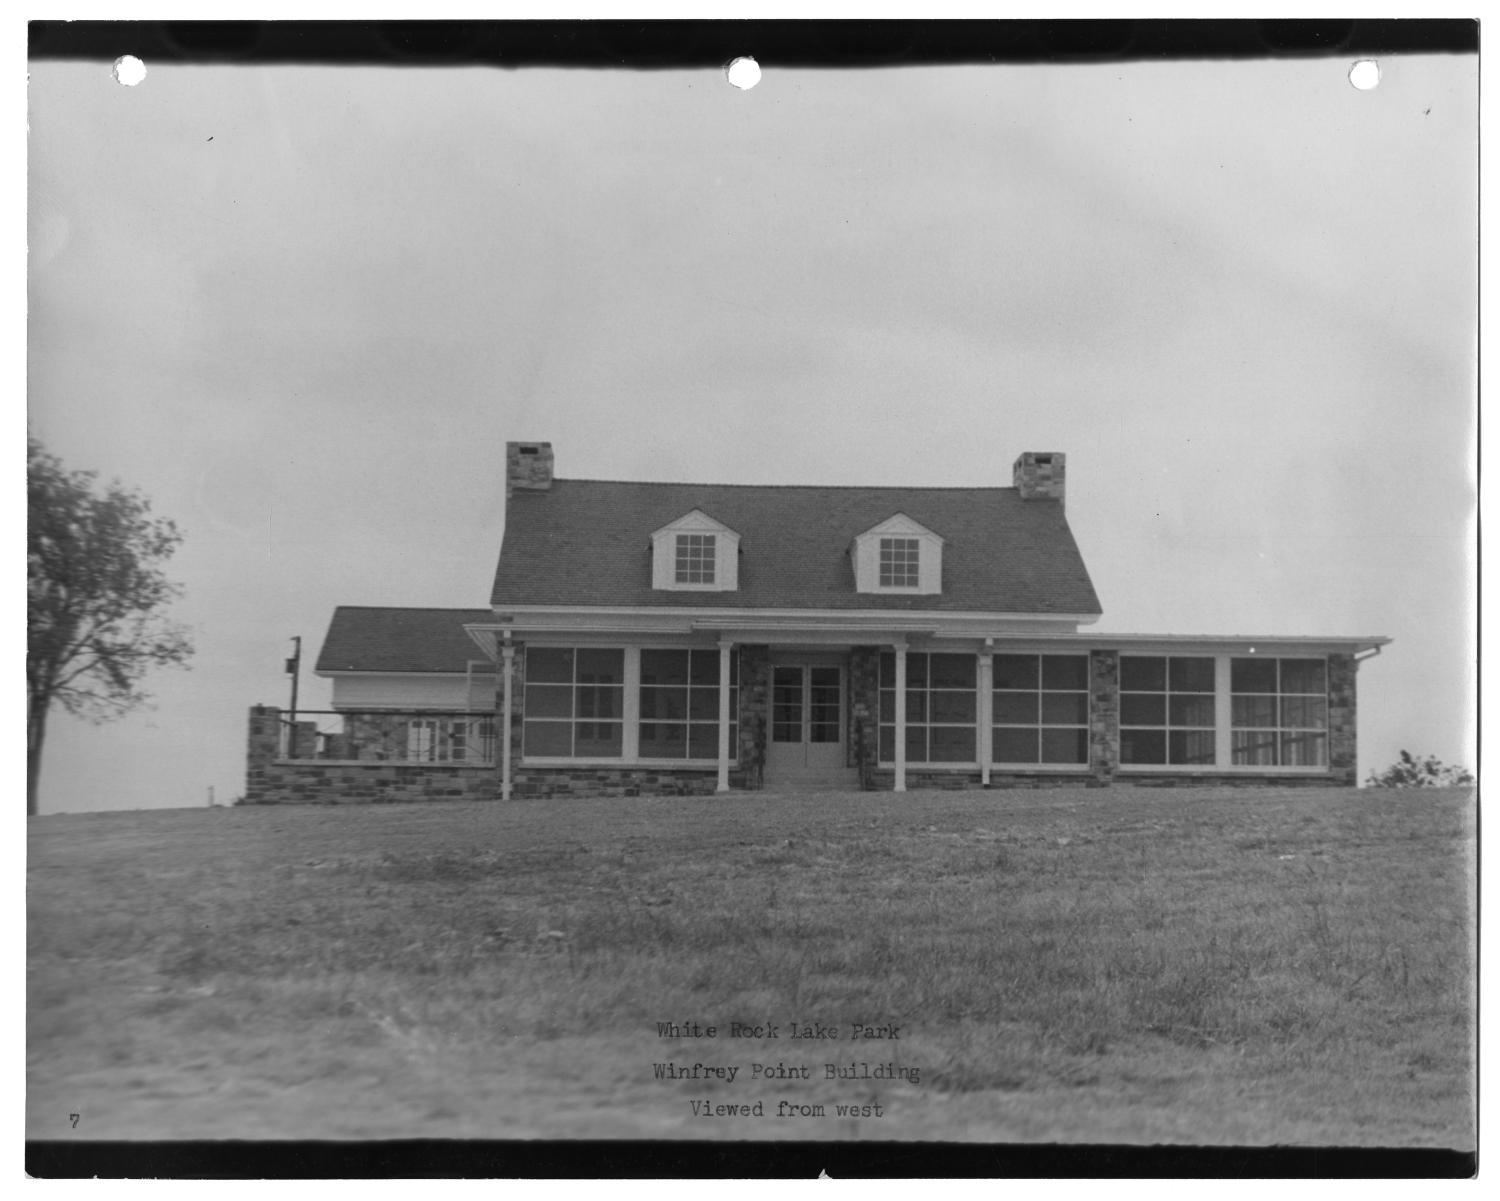 [Photograph of Winfrey Point Building at White Rock Lake Park]                                                                                                      [Sequence #]: 1 of 2